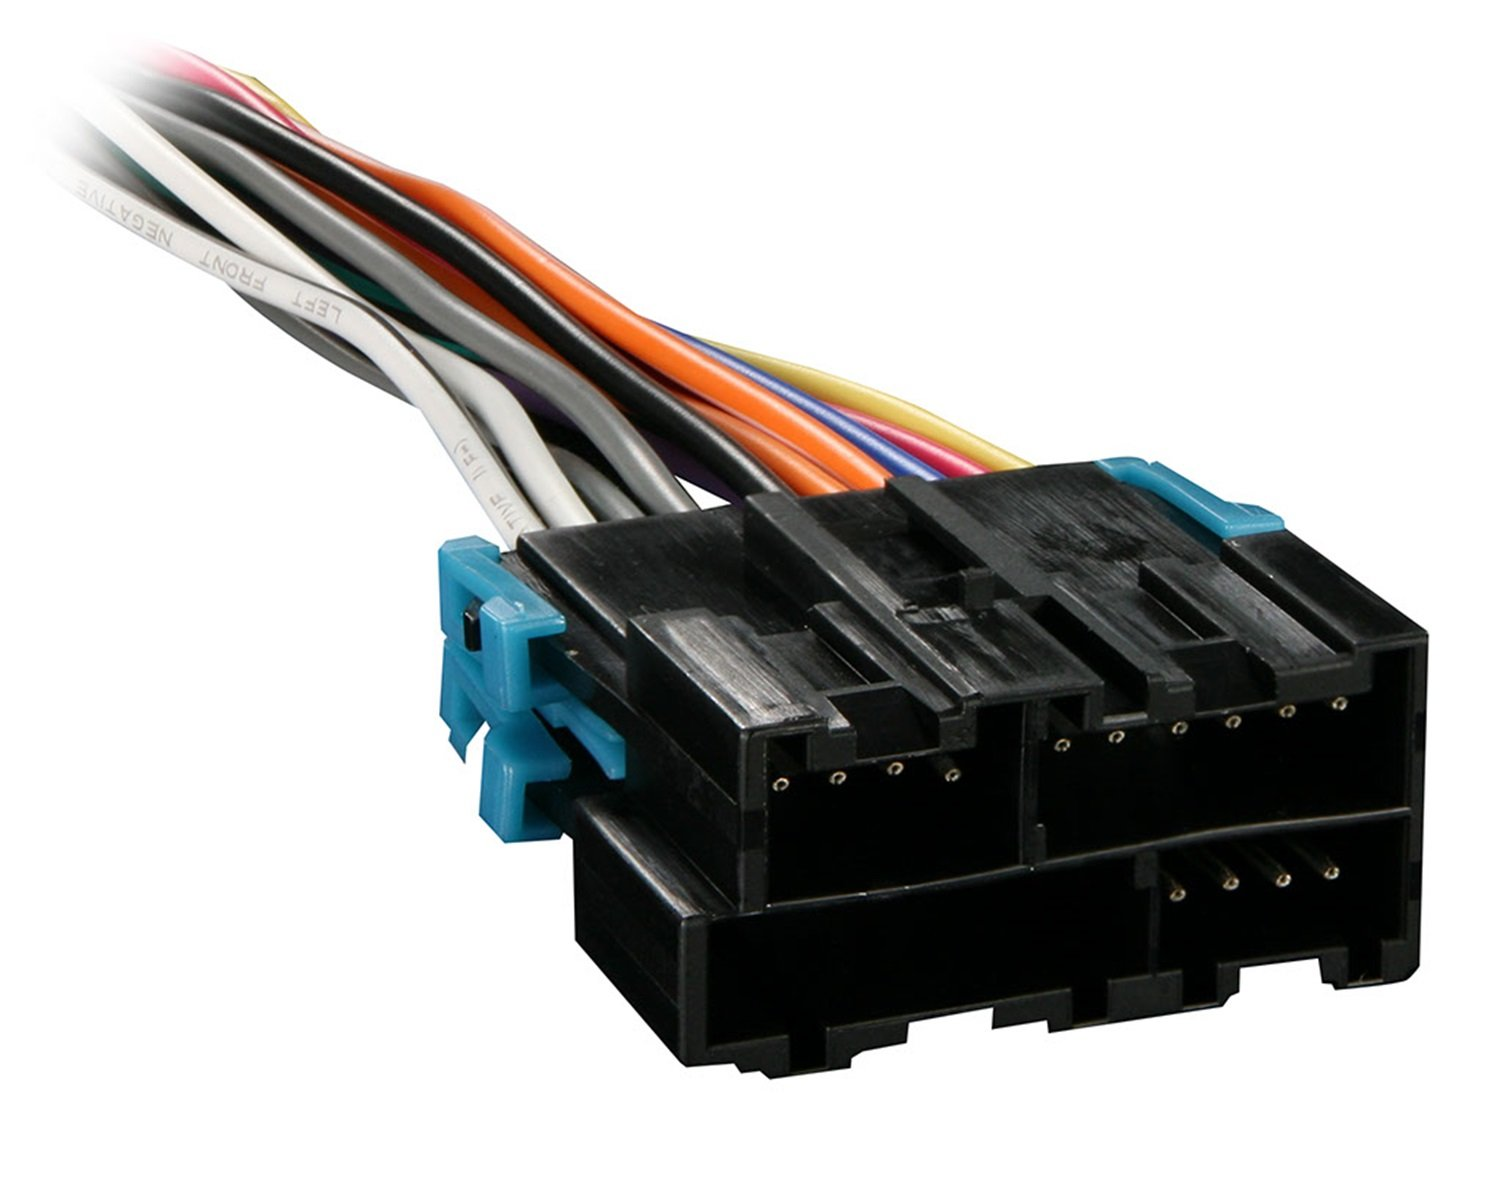 61 CwjZt1hL._SL1500_ radio wiring harnesses amazon com snap on wire harness adapter at n-0.co